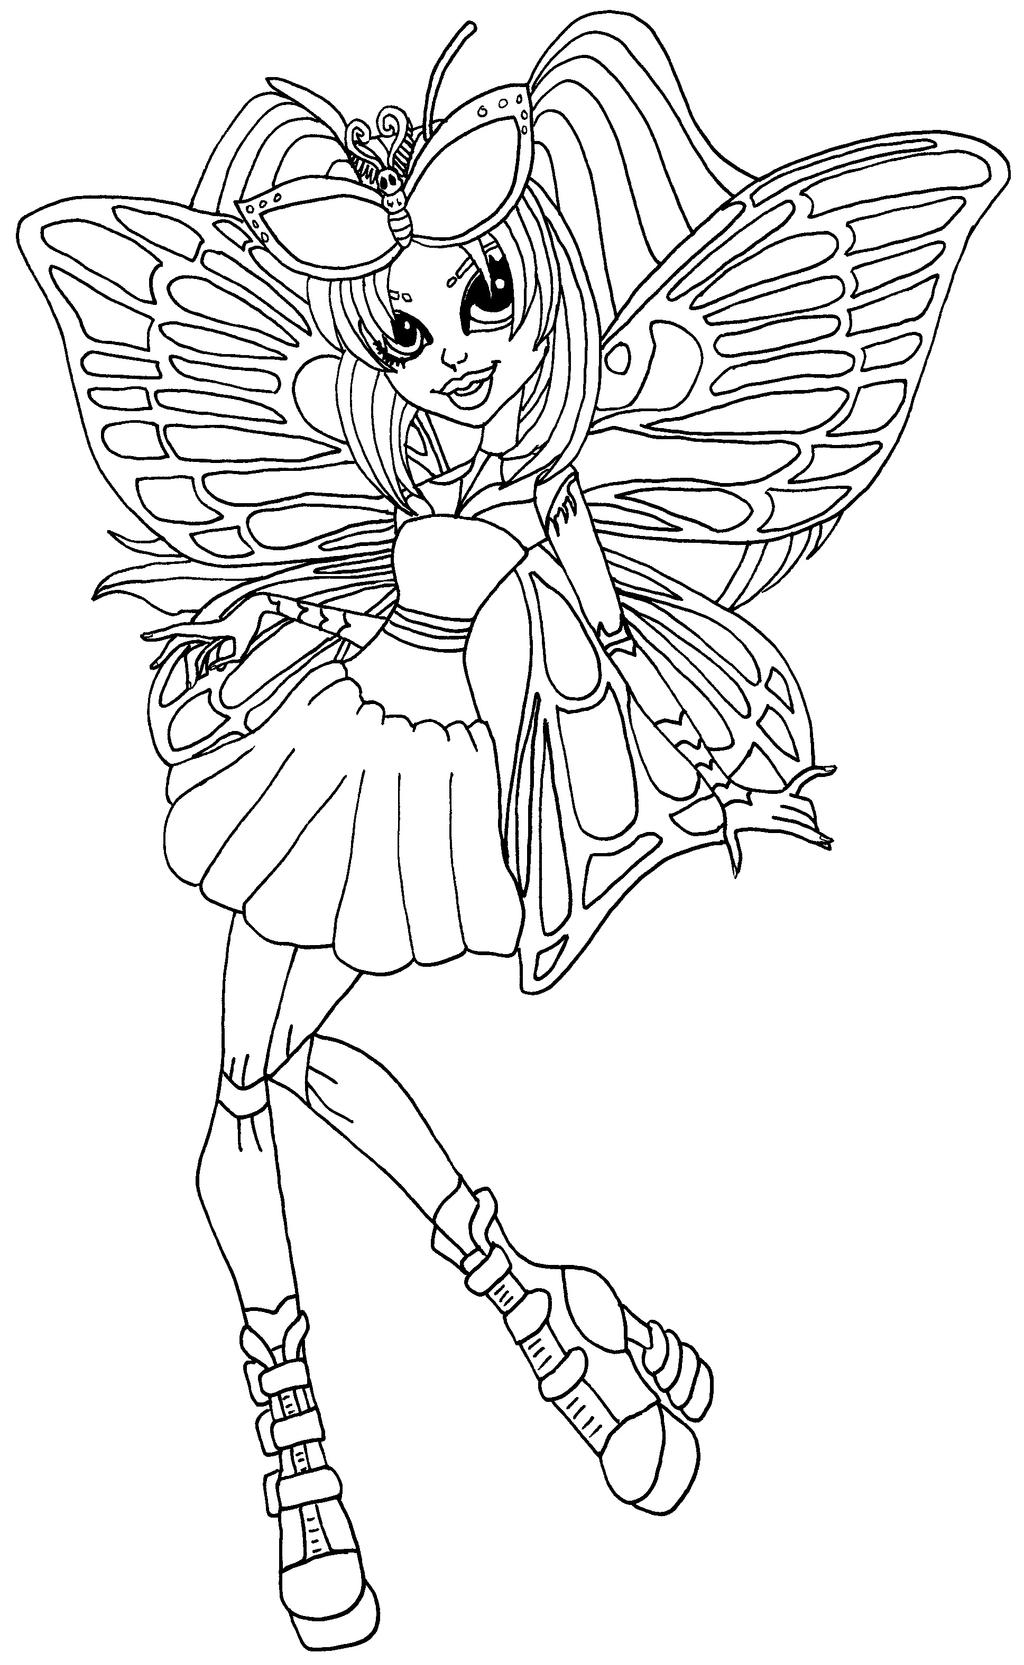 monster high coloring pages by elfkena on deviantart - Monster High Coloring Pages